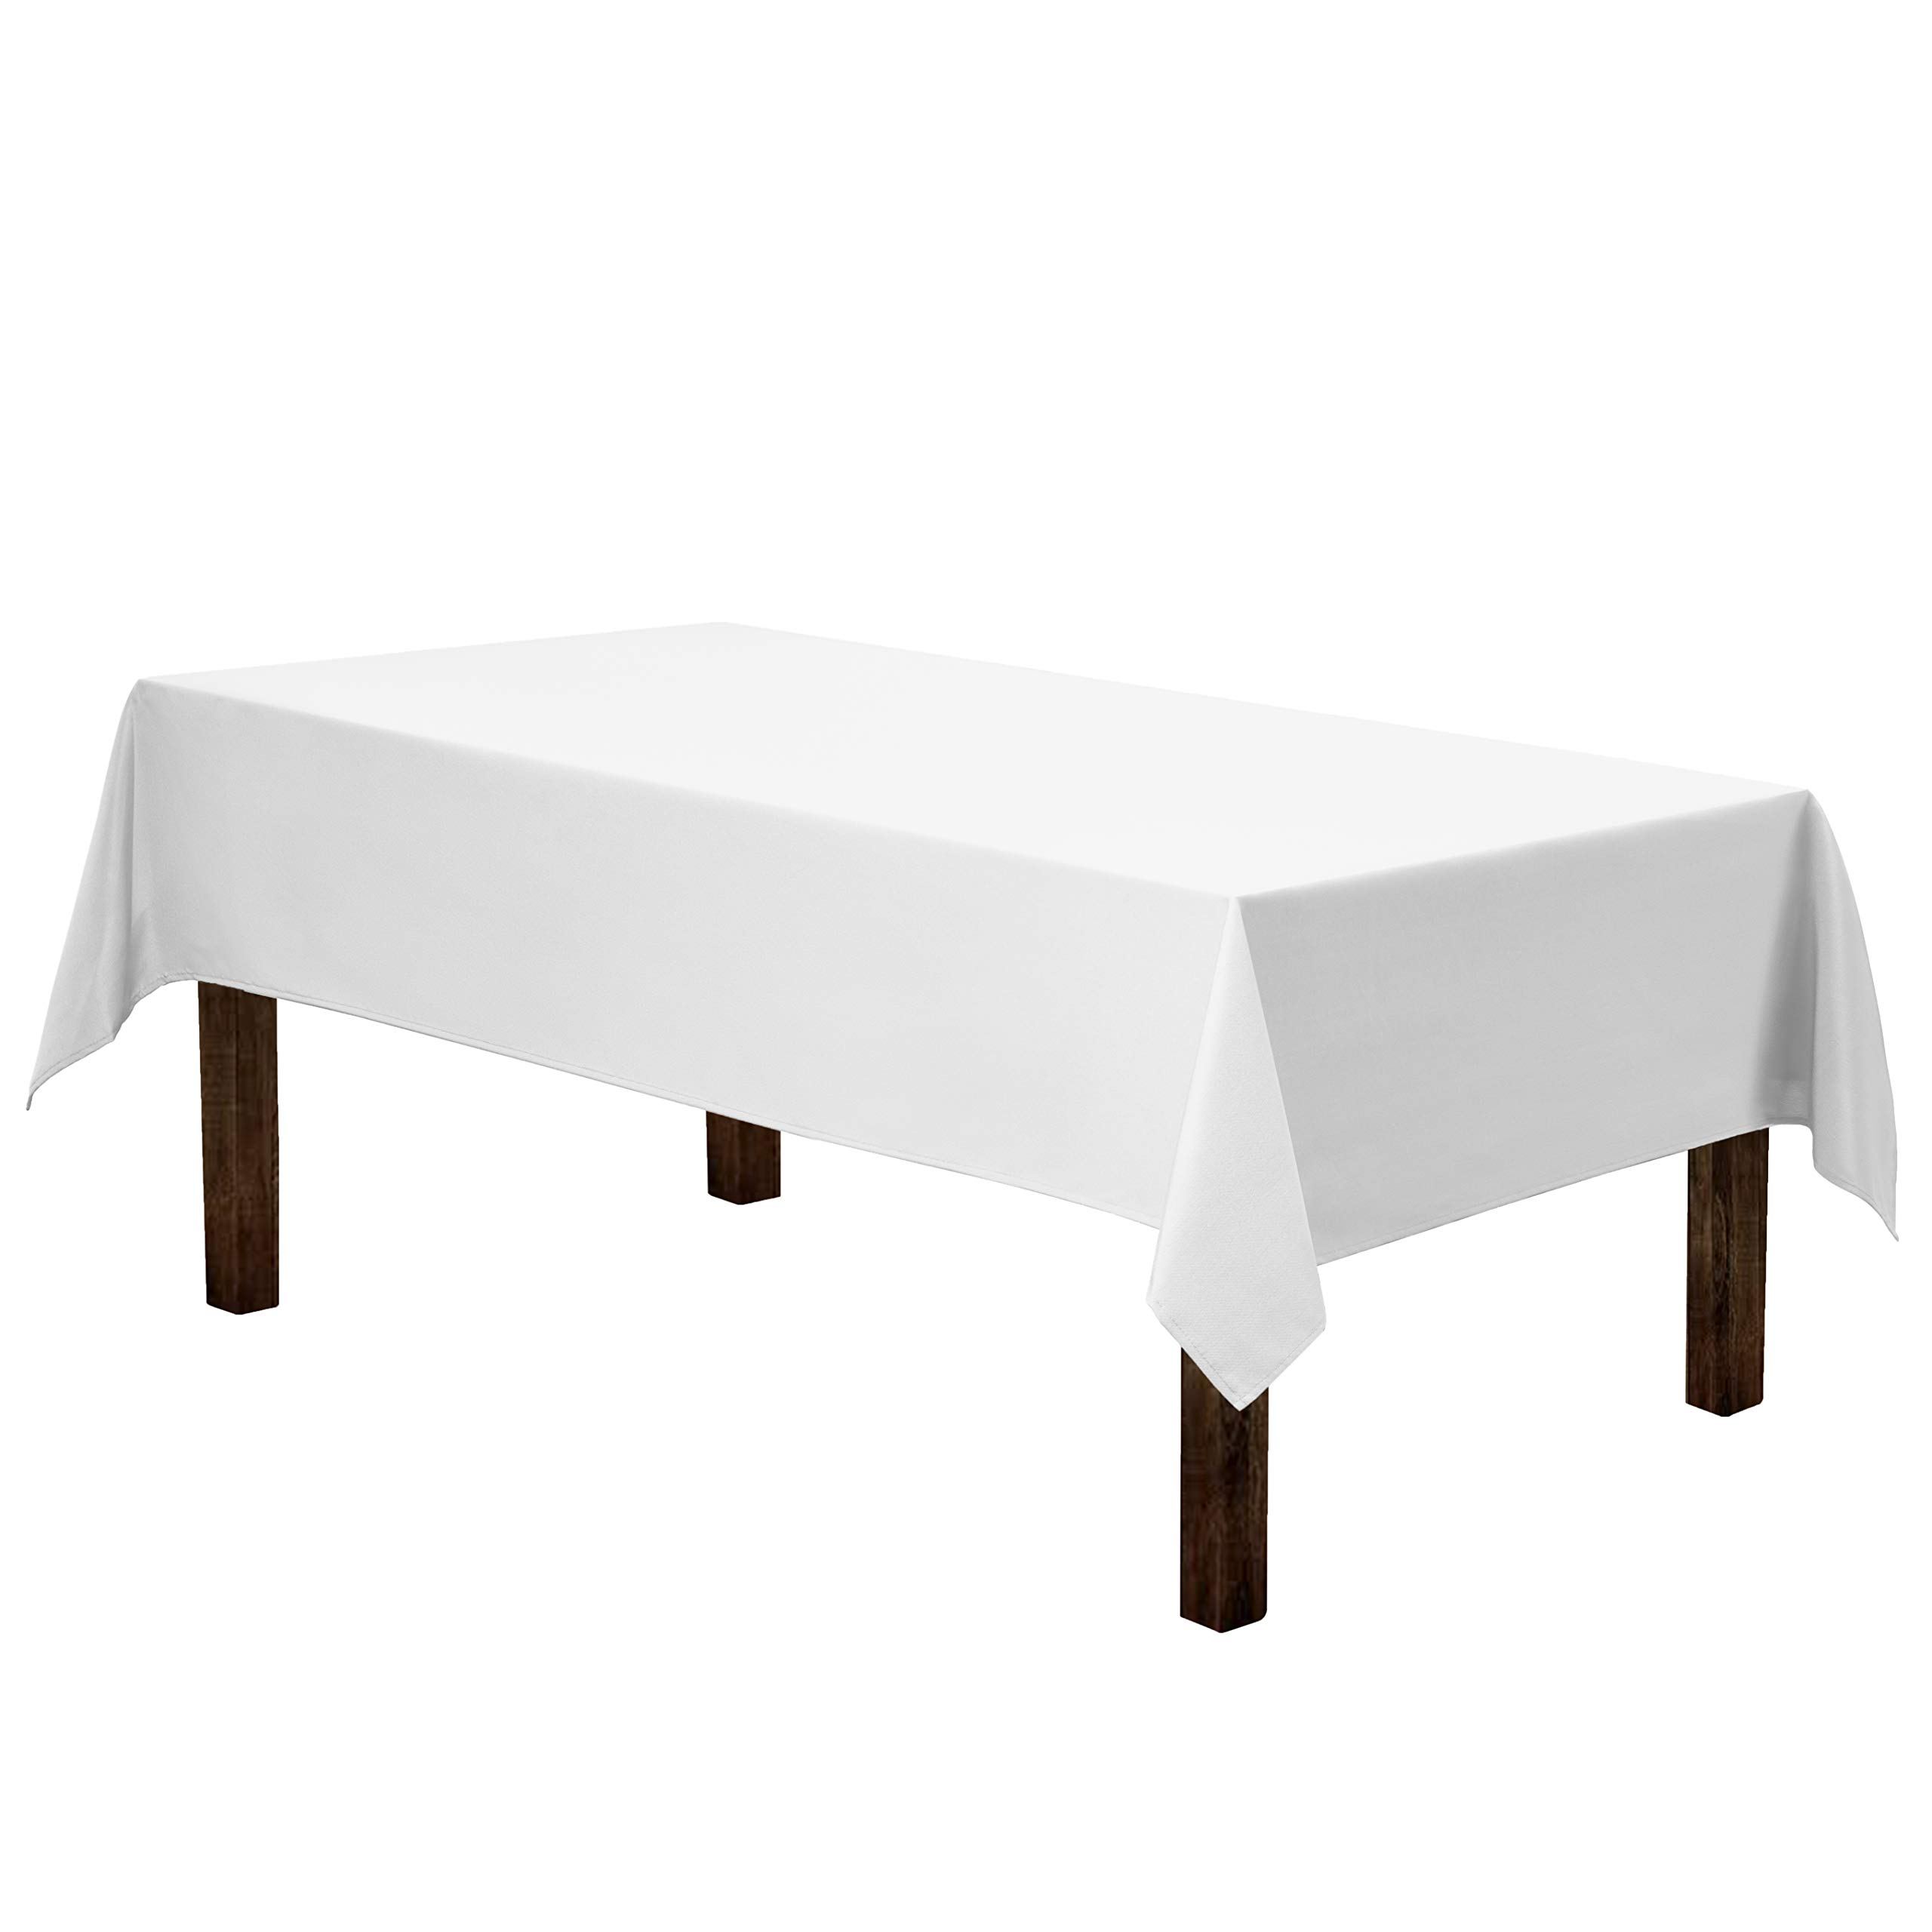 Gee Di Moda Rectangle Tablecloth - 60 x 84 Inch - White Rectangular Table Cloth for 5 Foot Table in Washable Polyester - Great for Buffet Table, Parties, Holiday Dinner, Wedding & More by Gee Di Moda